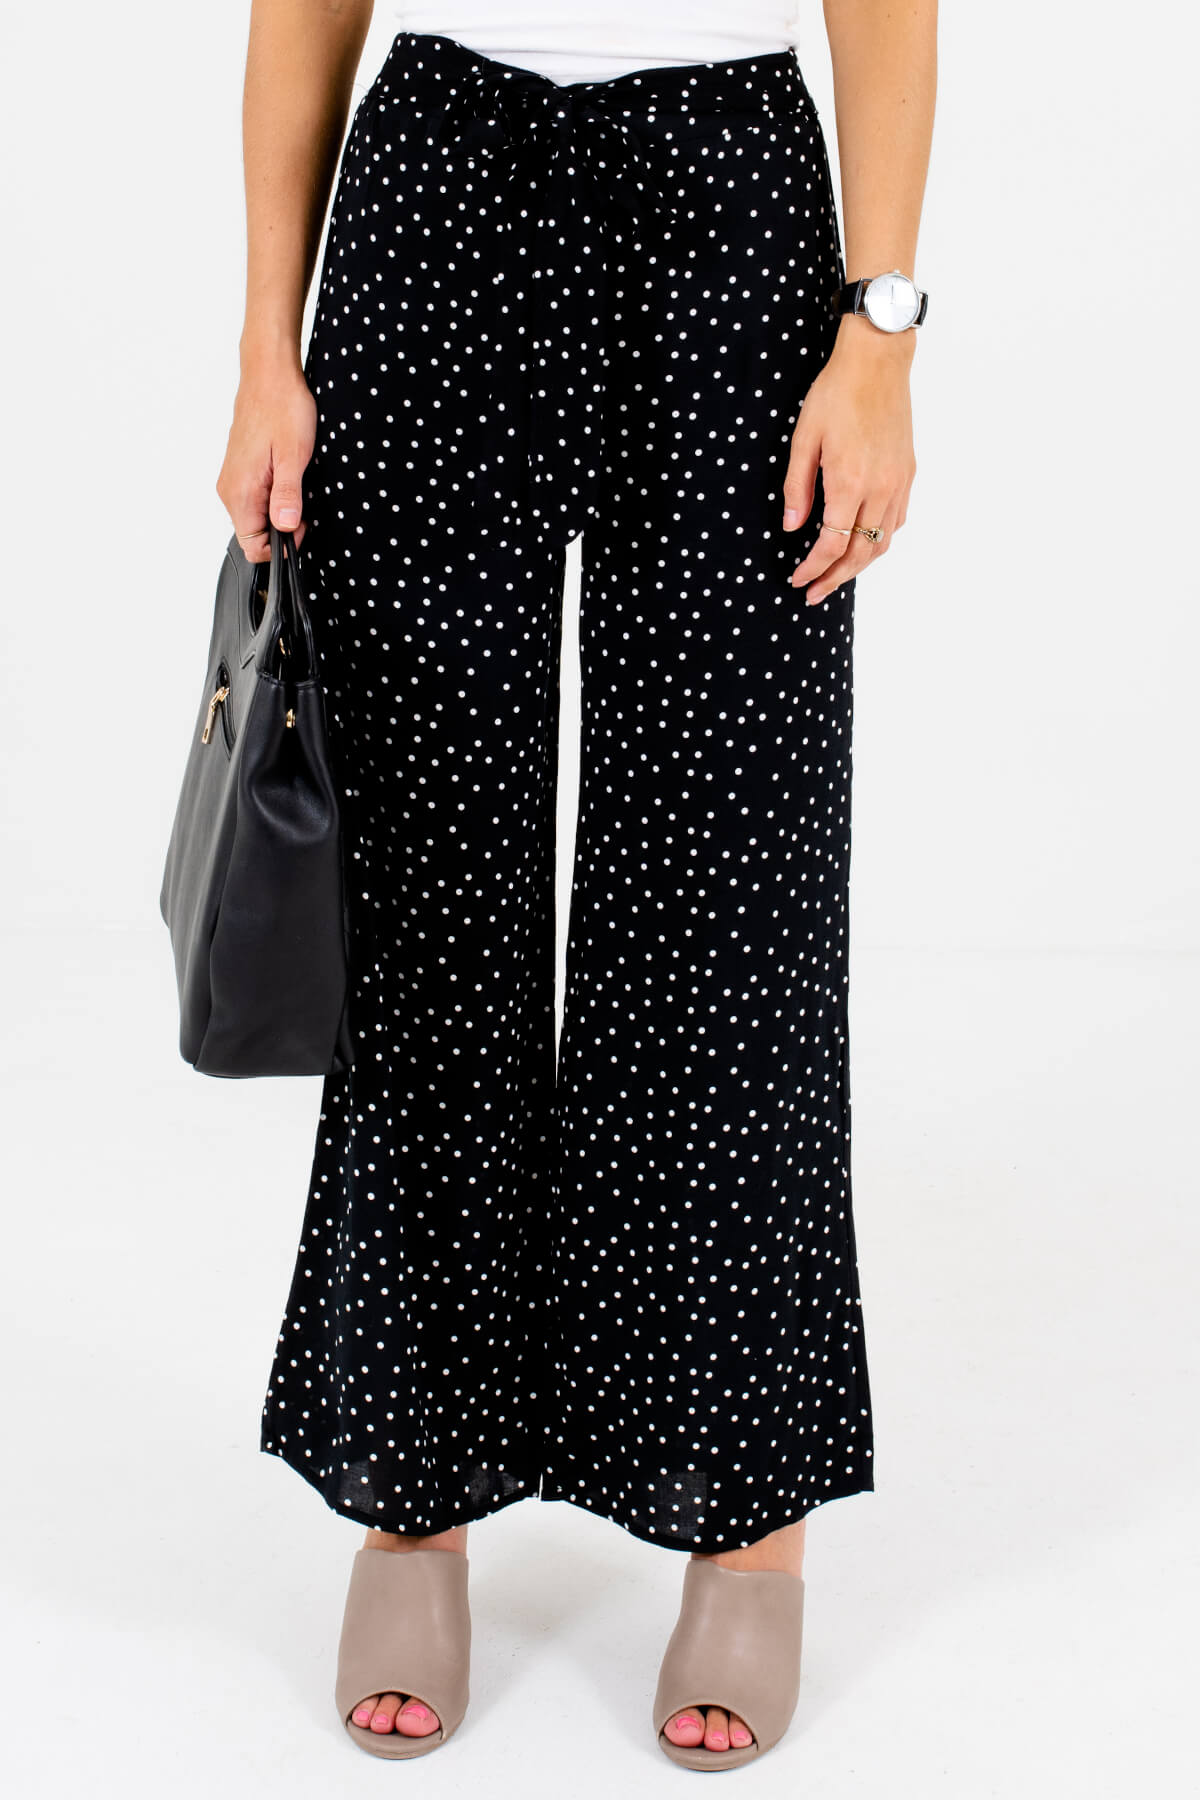 Black and White Polka Dot Patterned Boutique Pants for Women